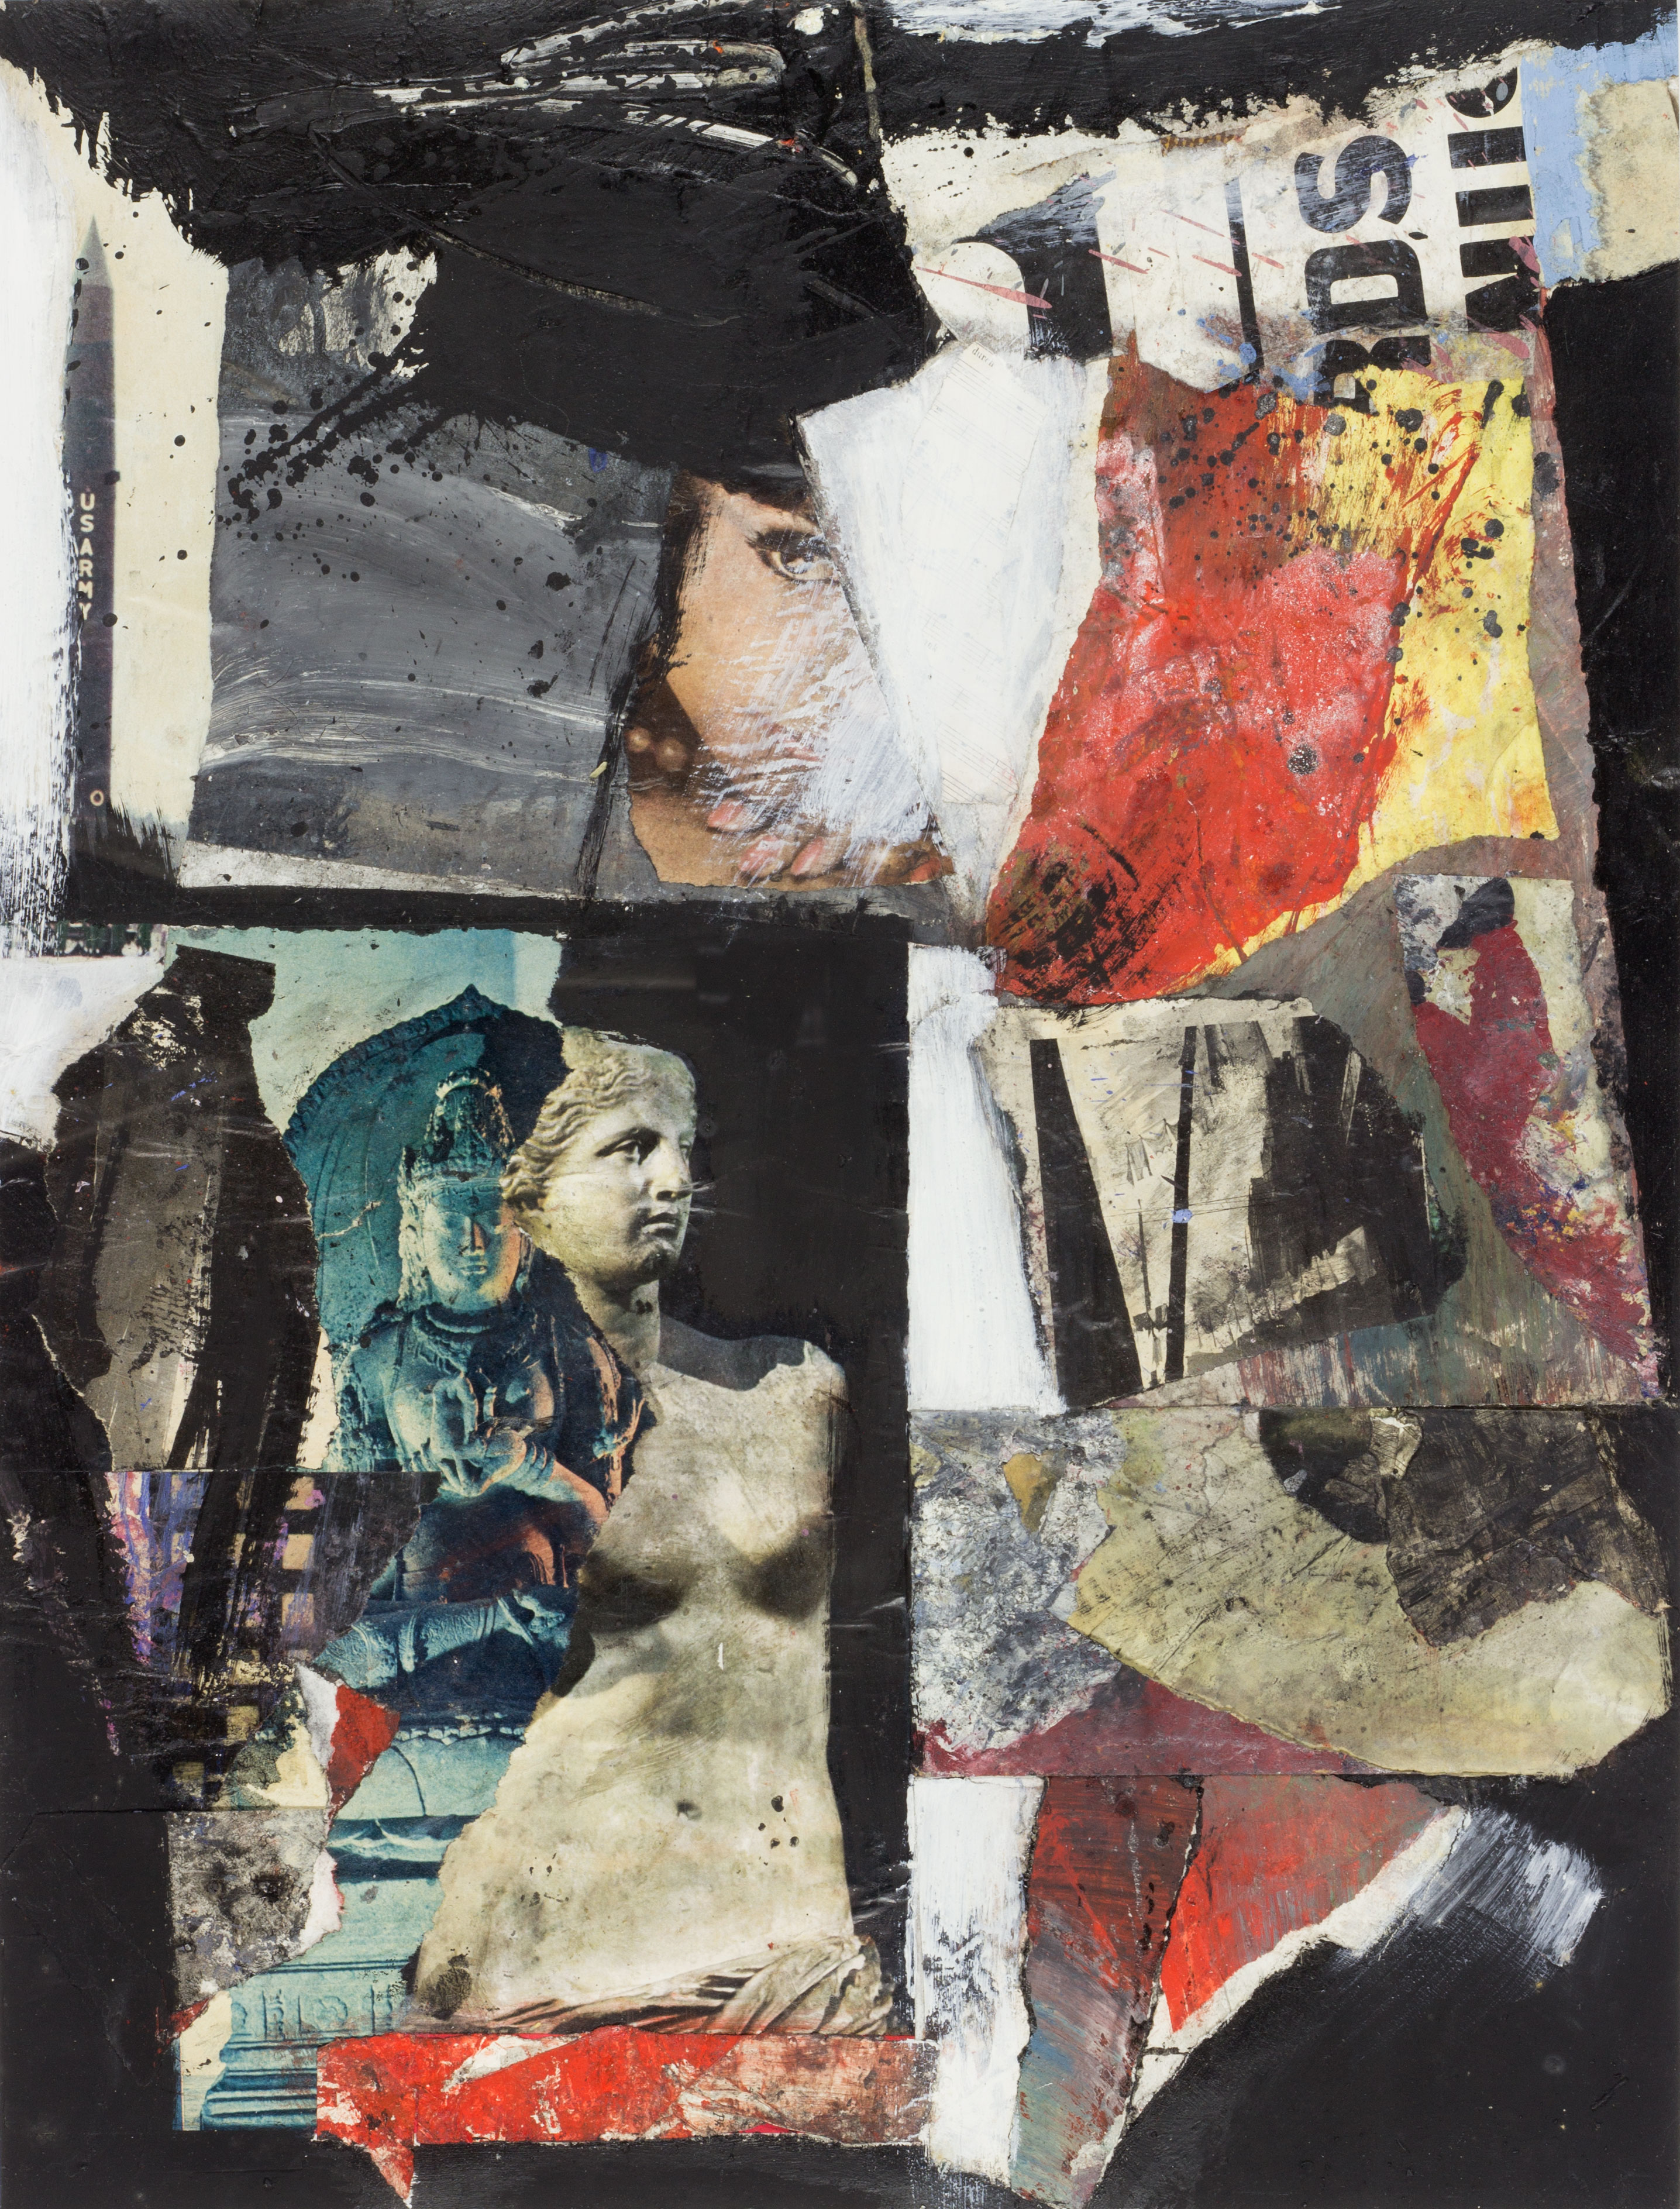 Collage 'Nike RDS' Gustave Asselbergs- Gustave Asselbergs